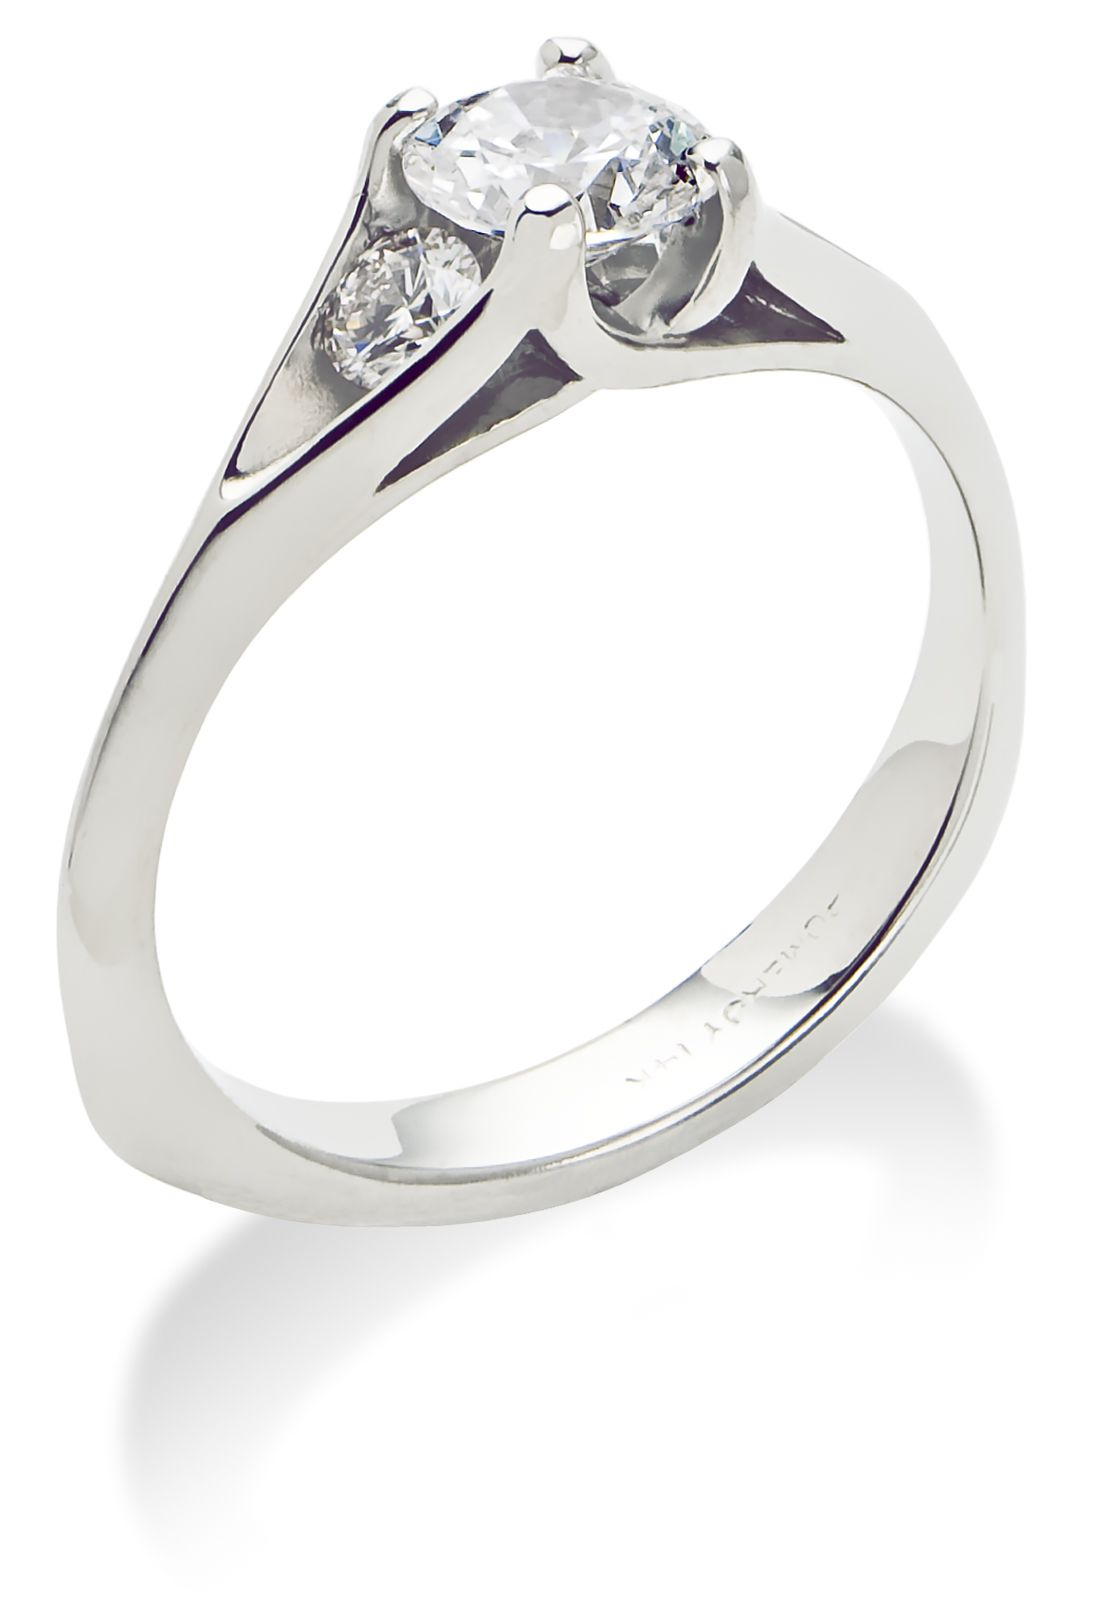 practical ethical sustainable ethically sourcing rings diamonds sourced rosecut a wedding